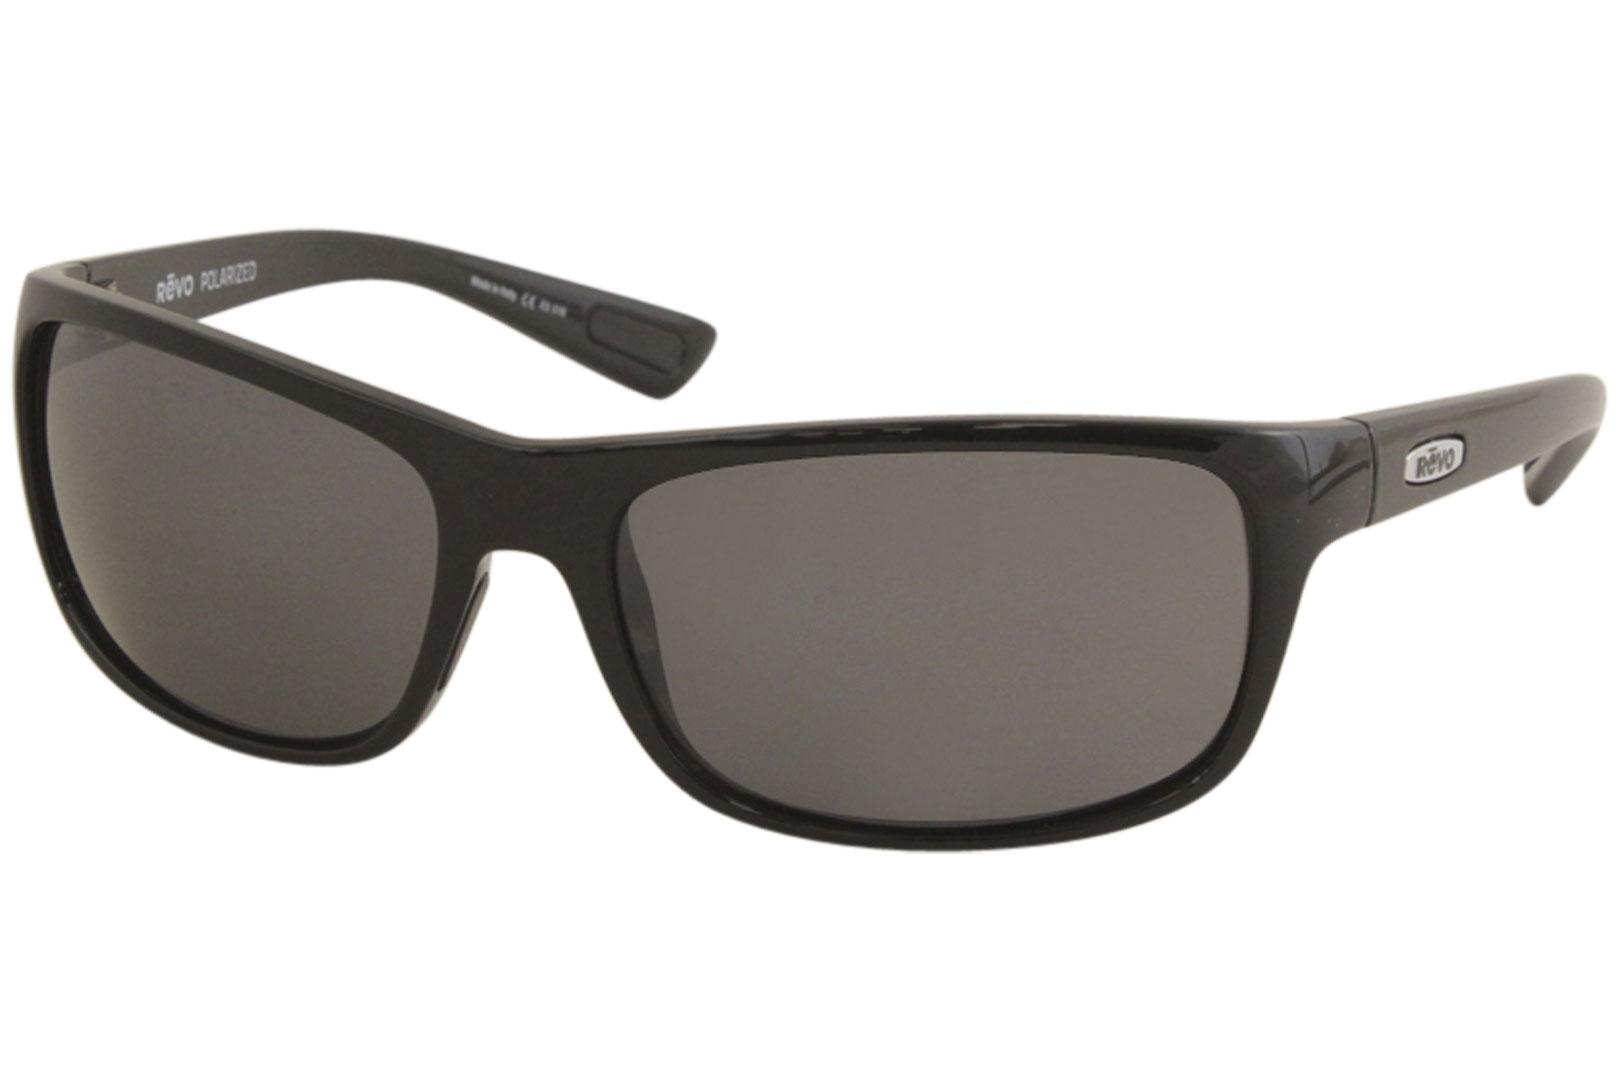 Image of - Black/Polarized Grey Graphite   01 - Lens 62 Bridge 16 Temple 135mm